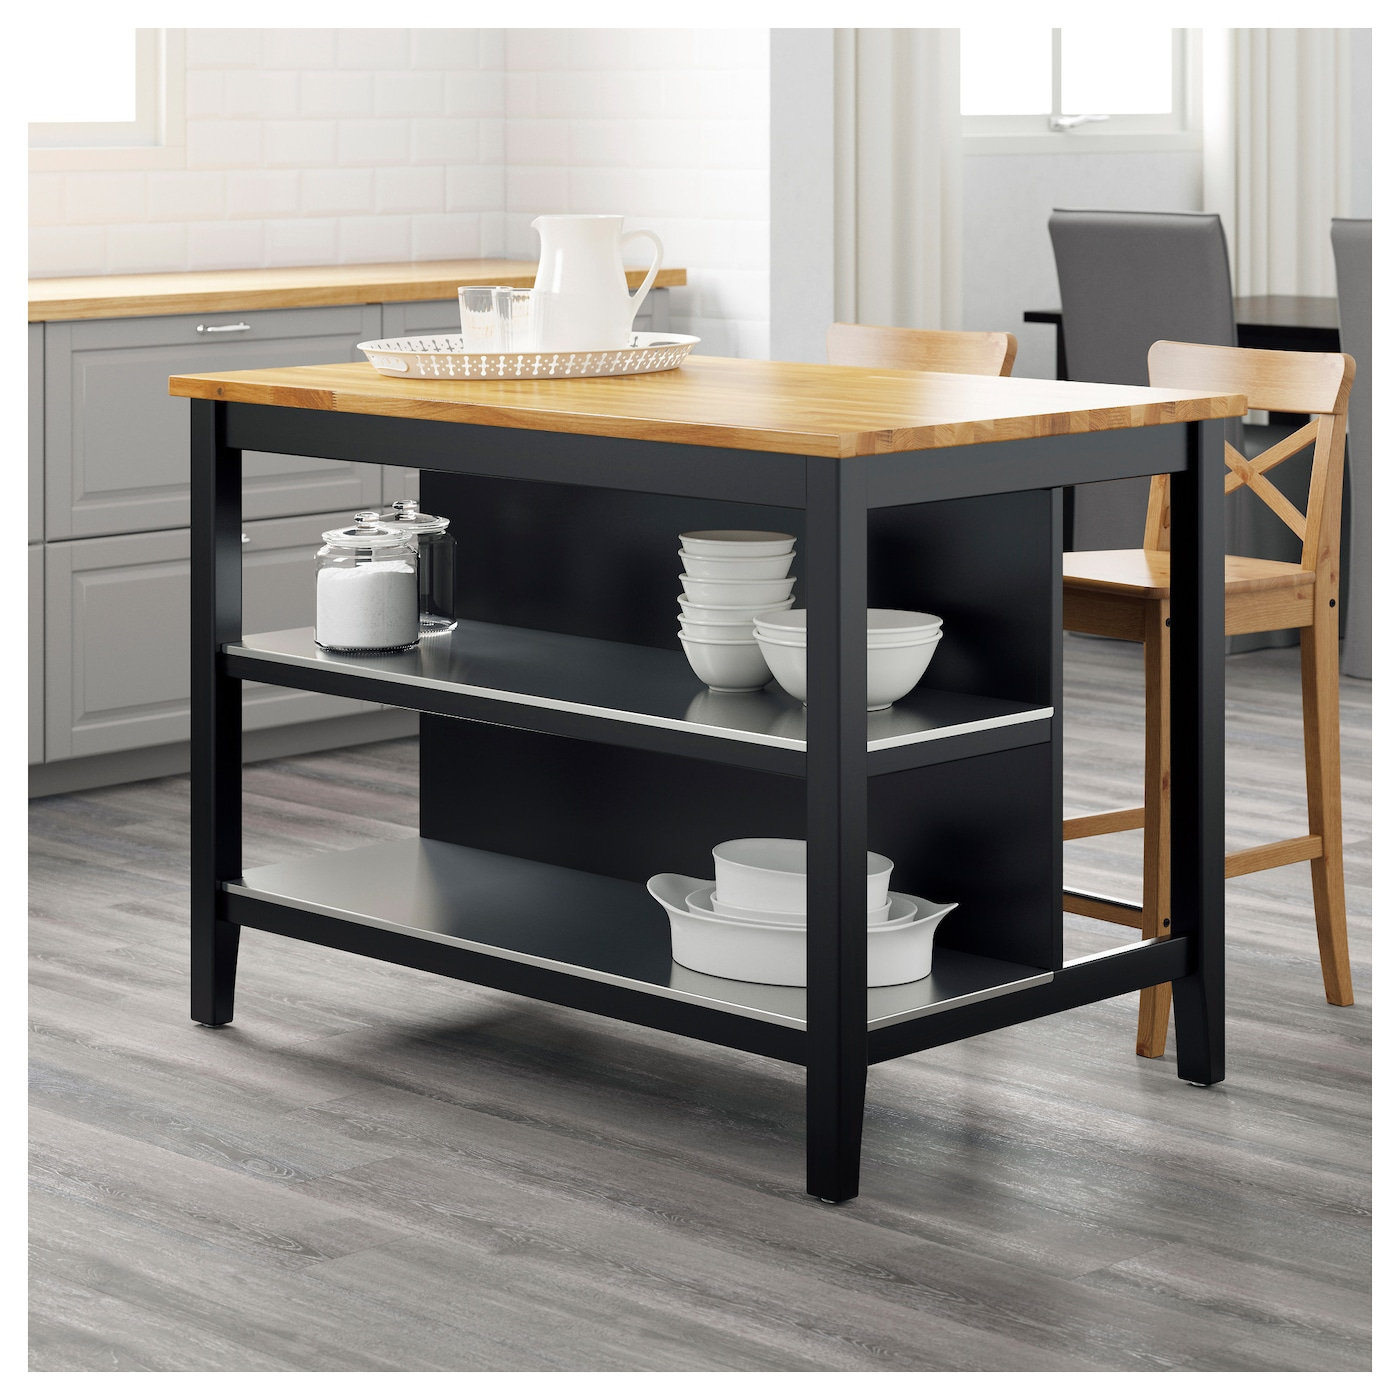 stenstorp kitchen island black brown oak 126 x 79 cm ikea. Black Bedroom Furniture Sets. Home Design Ideas